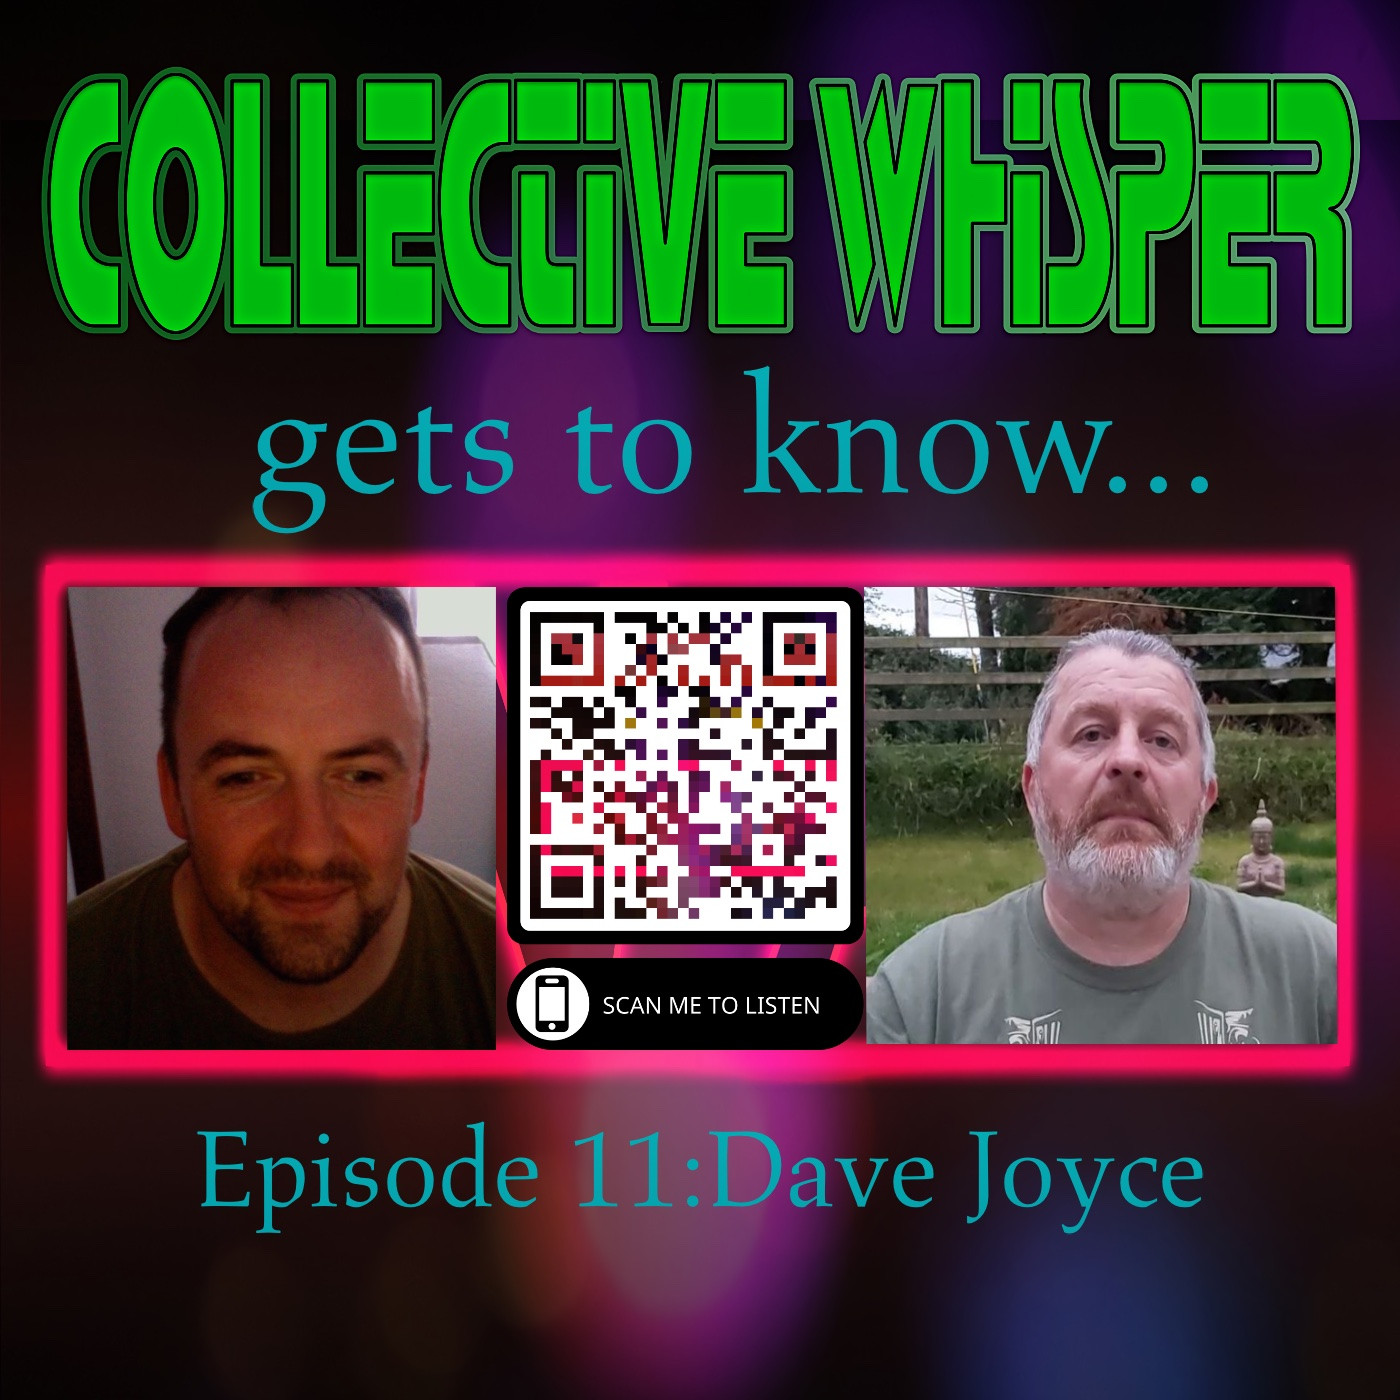 Collective Whisper gets to know.......Dave Joyce